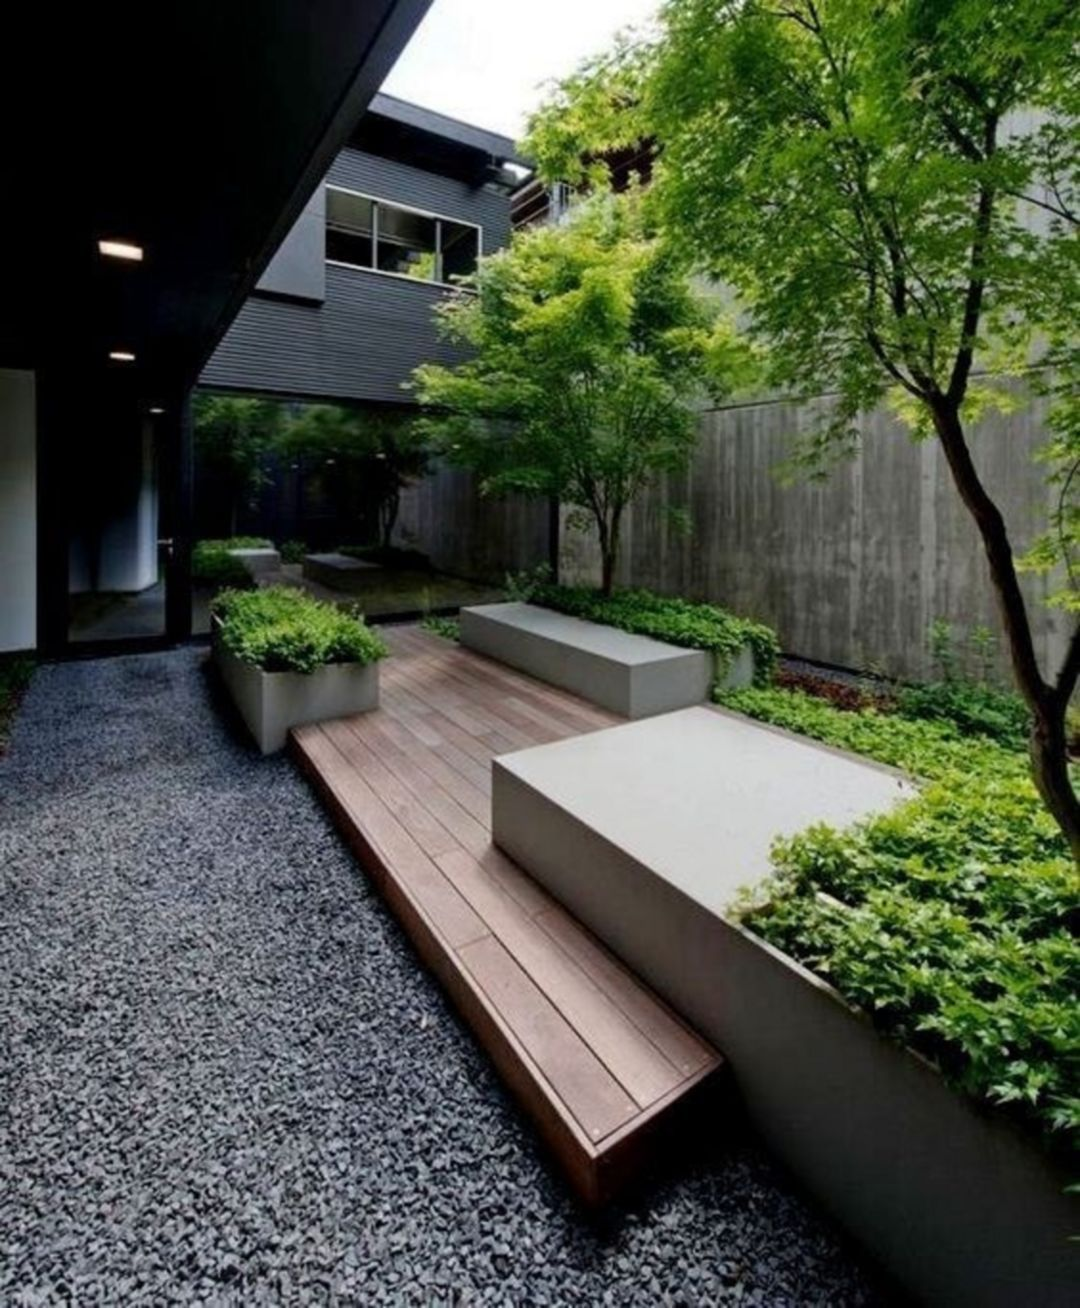 15 Budget Garden Relaxation Ideas That You Can Try At Home – Home and Apartment Ideas